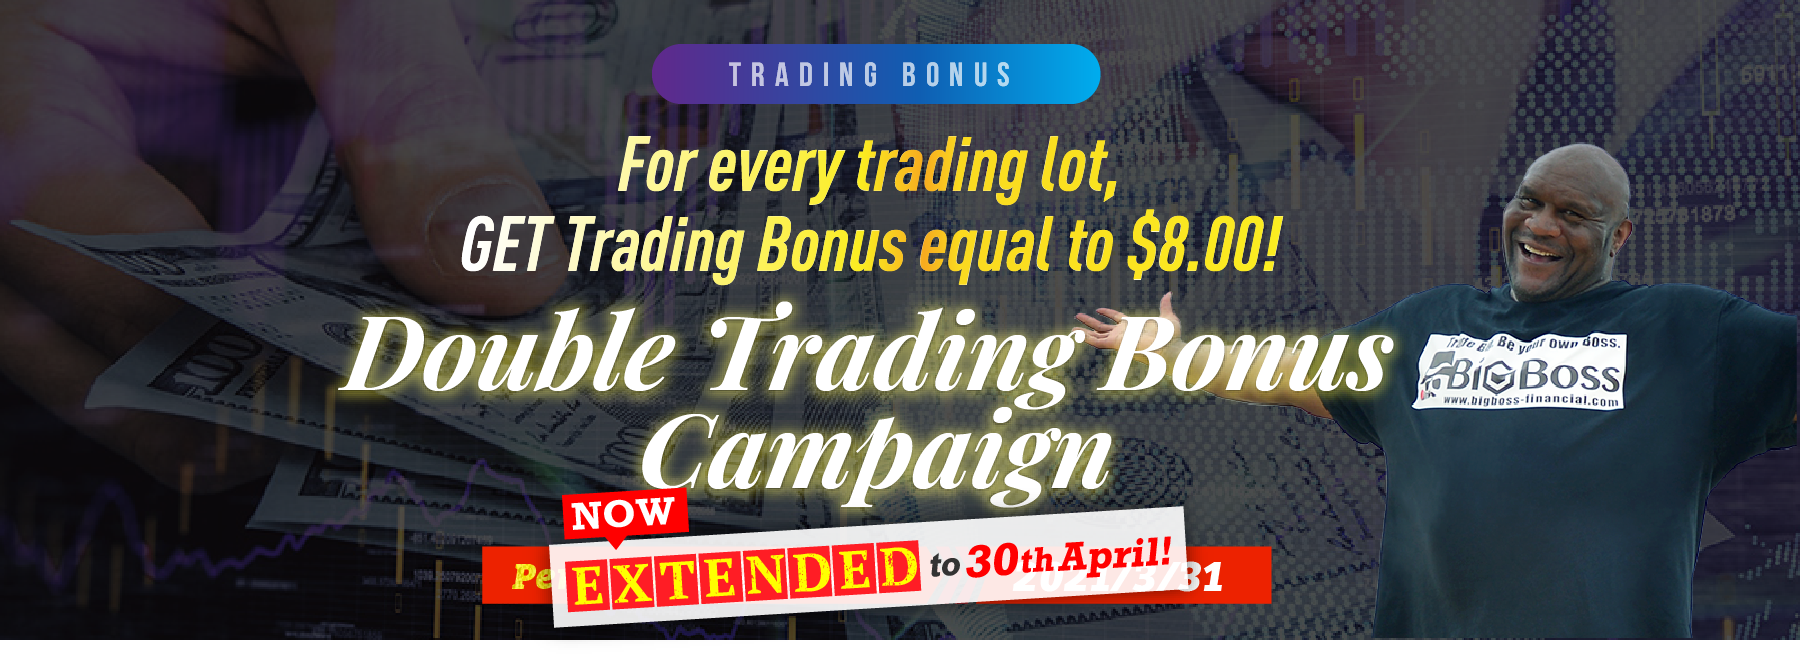 Trading Bonus For every trading lot, GET Trading Bonus equal to $8.00! Double Trading Bonus Campaign Now Extended to 30th April!!